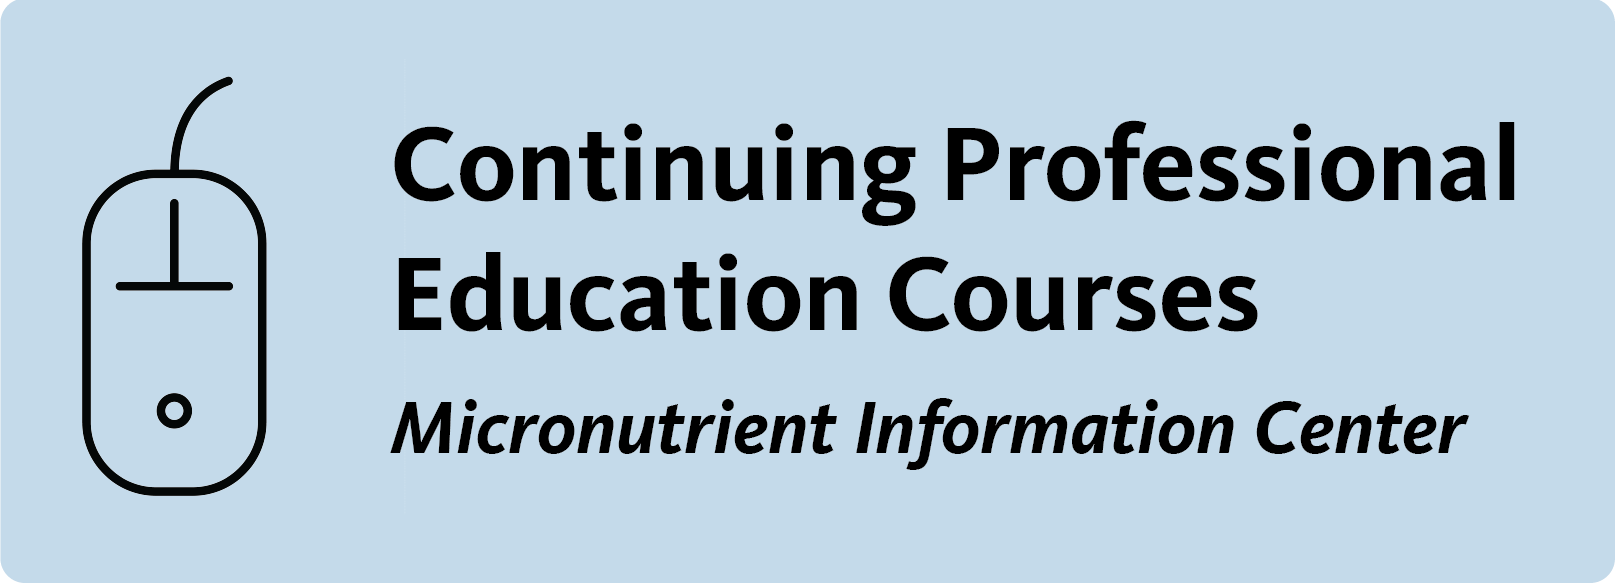 button to link to page that list the LPI continuing education courses for healthcare professionals